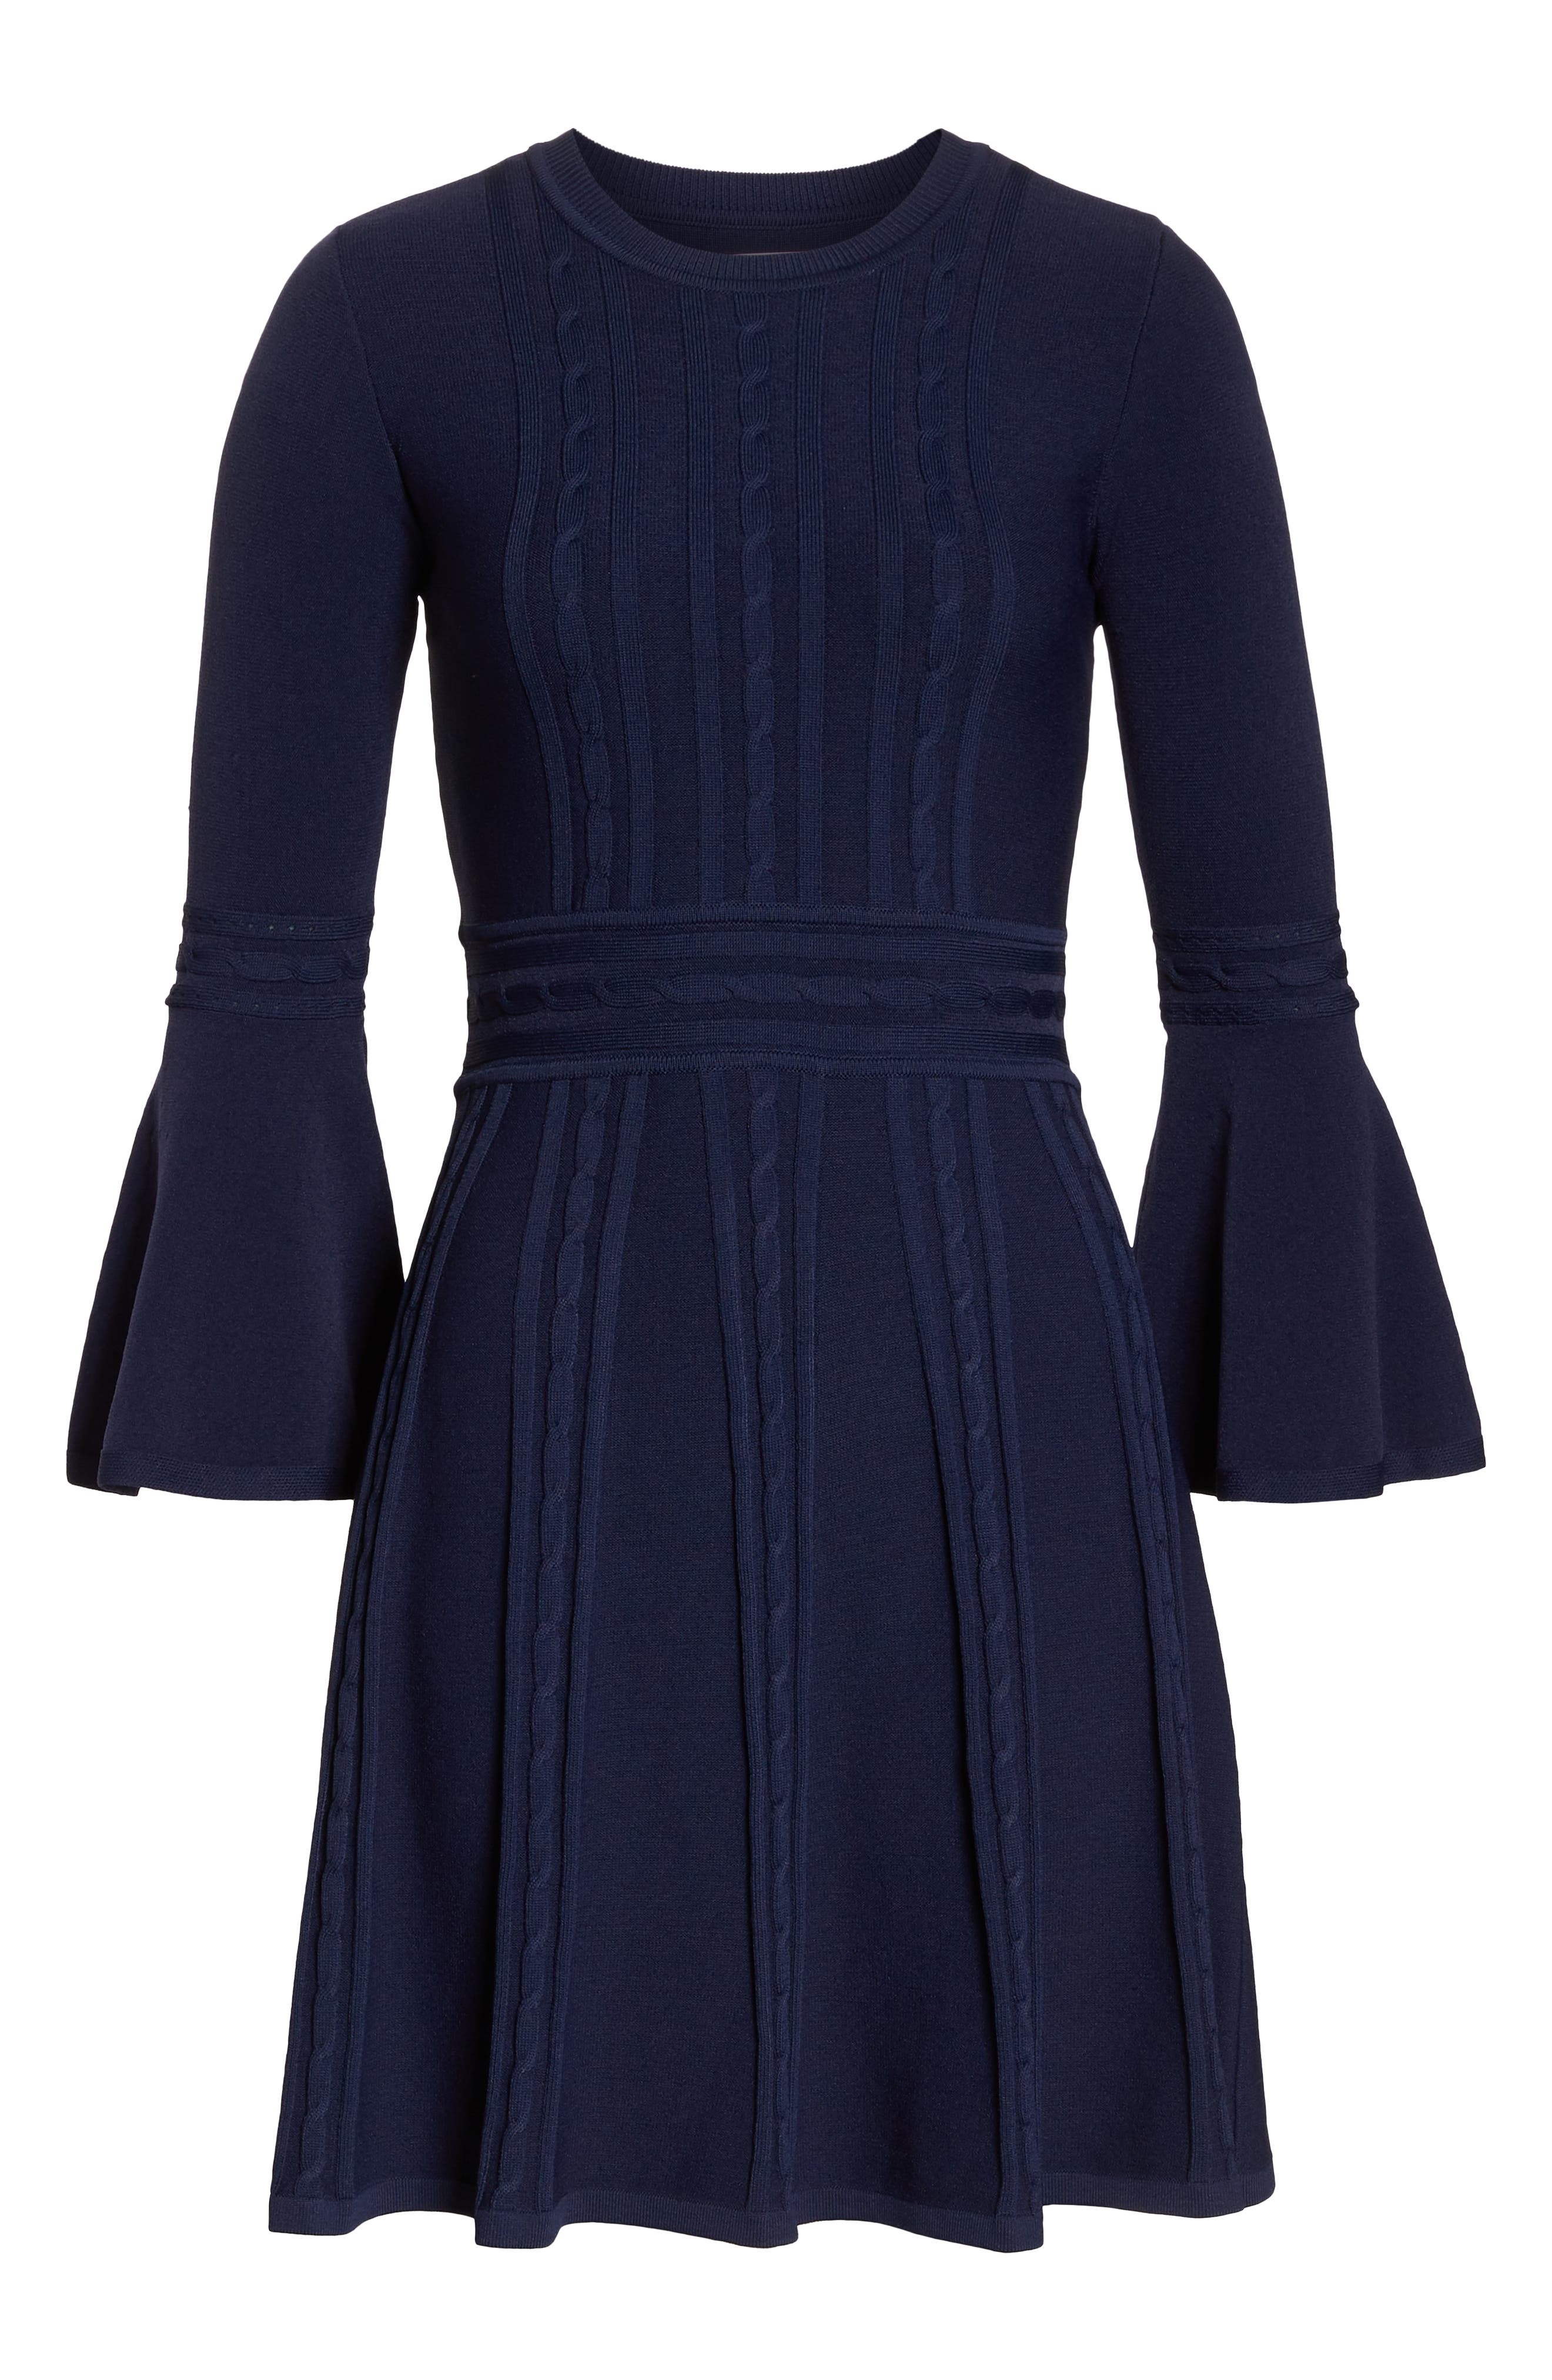 ELIZA J, Bell Sleeve Sweater Dress, Alternate thumbnail 7, color, 410